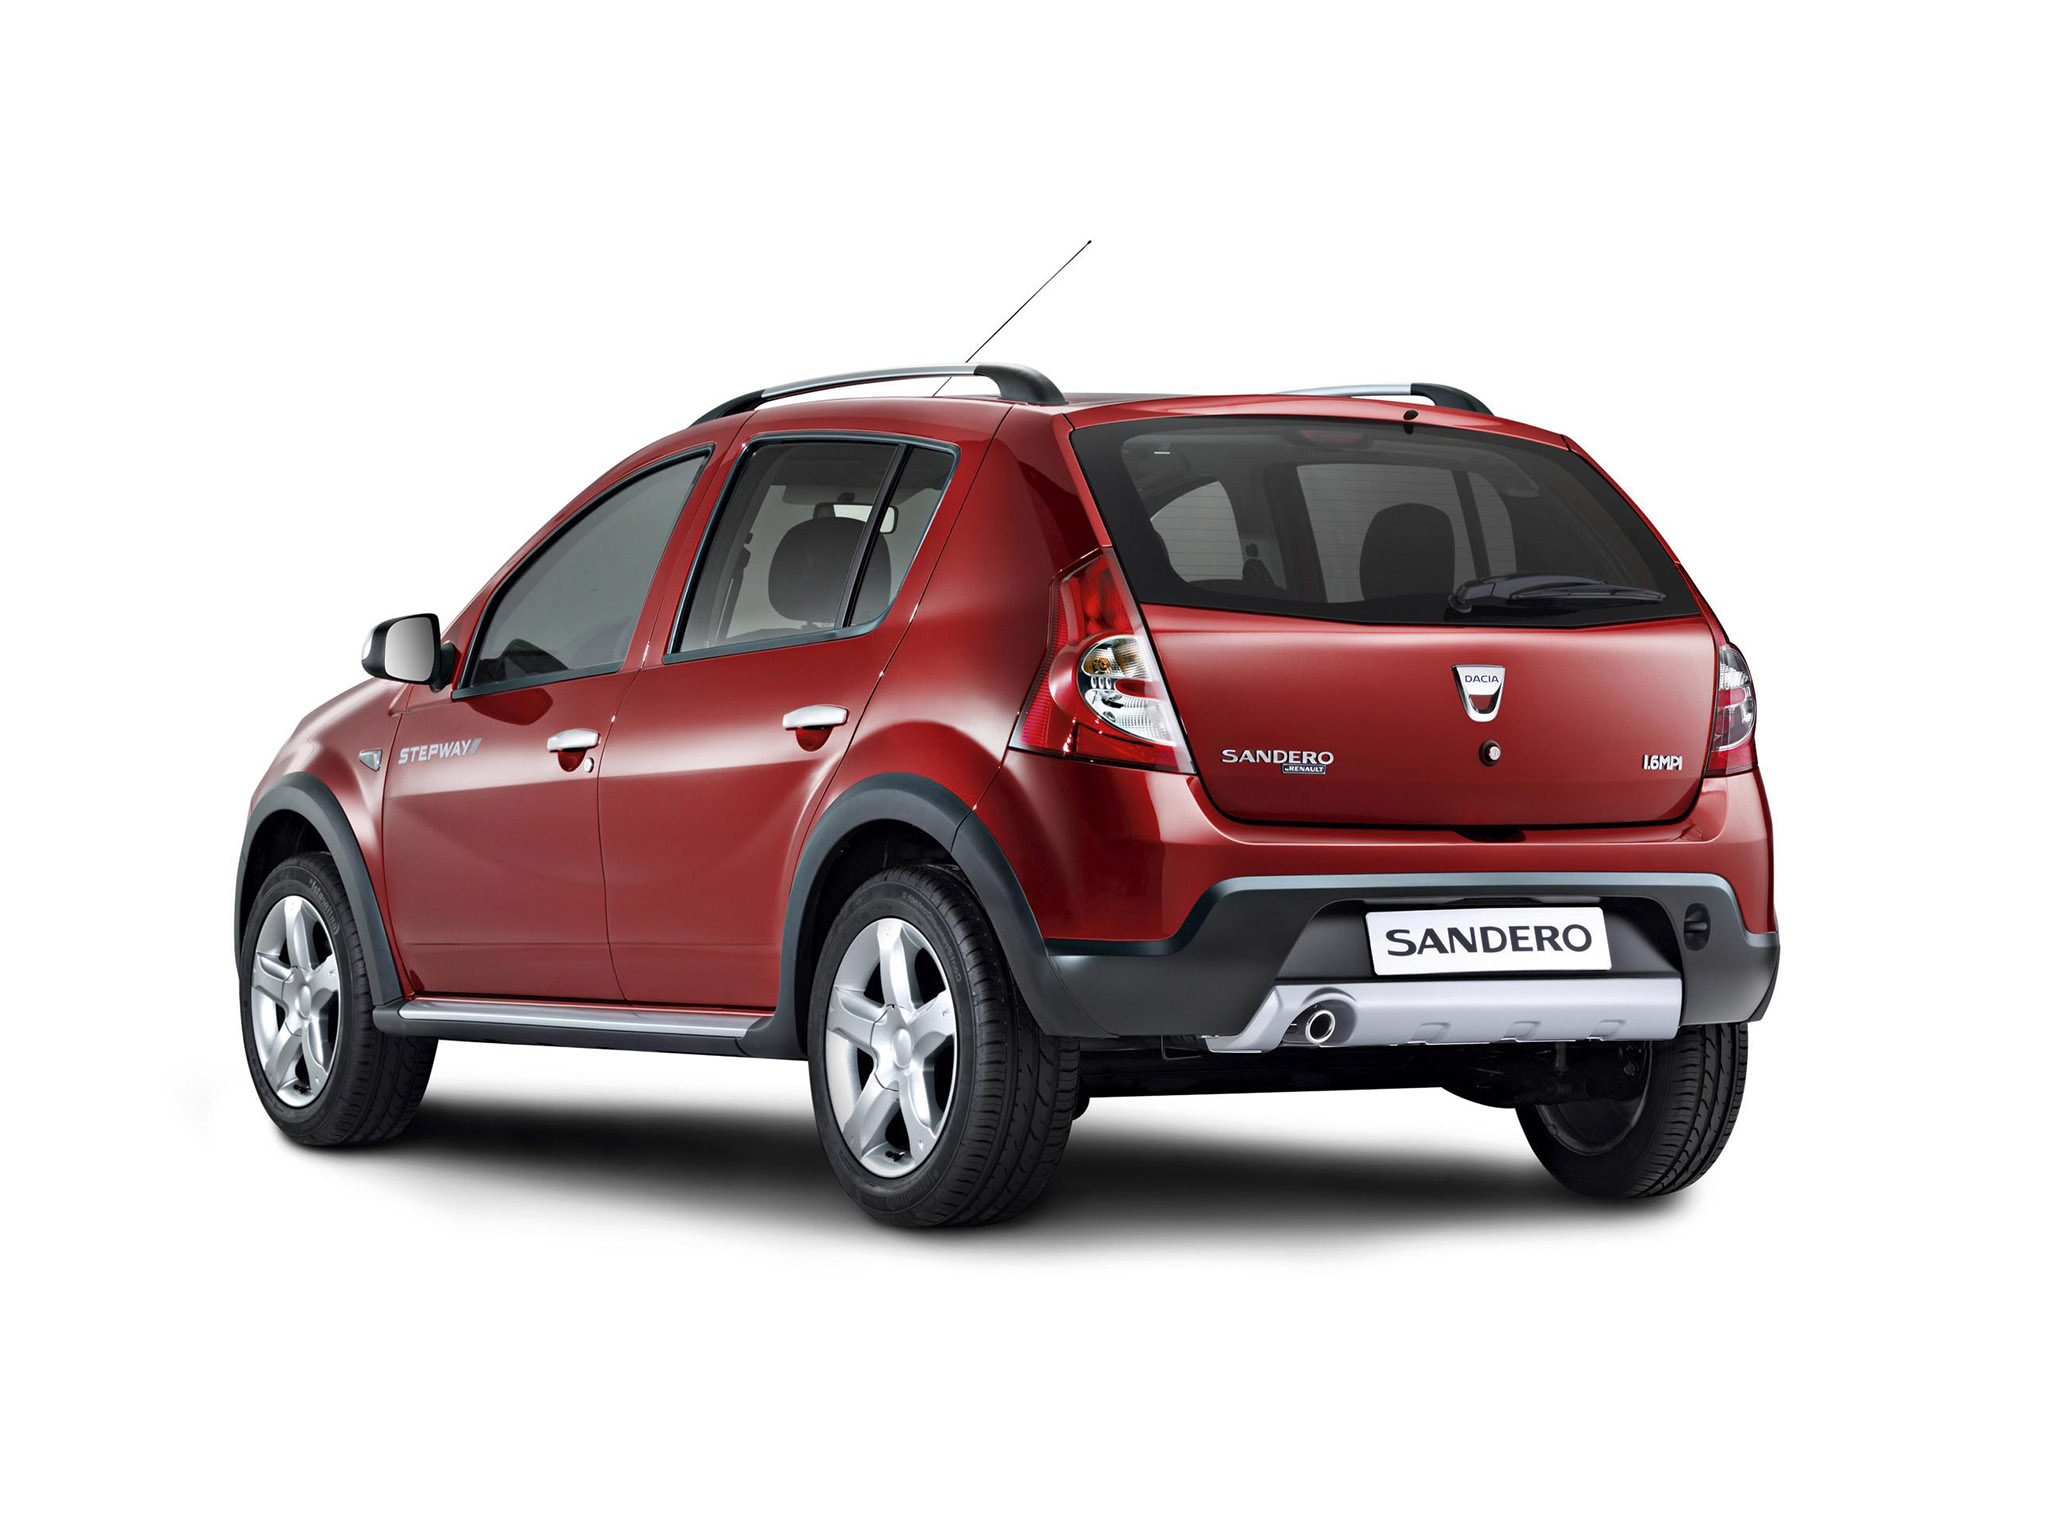 dacia sandero stepway 2009 dacia sandero stepway 2009 photo 19 car in pictures car photo gallery. Black Bedroom Furniture Sets. Home Design Ideas